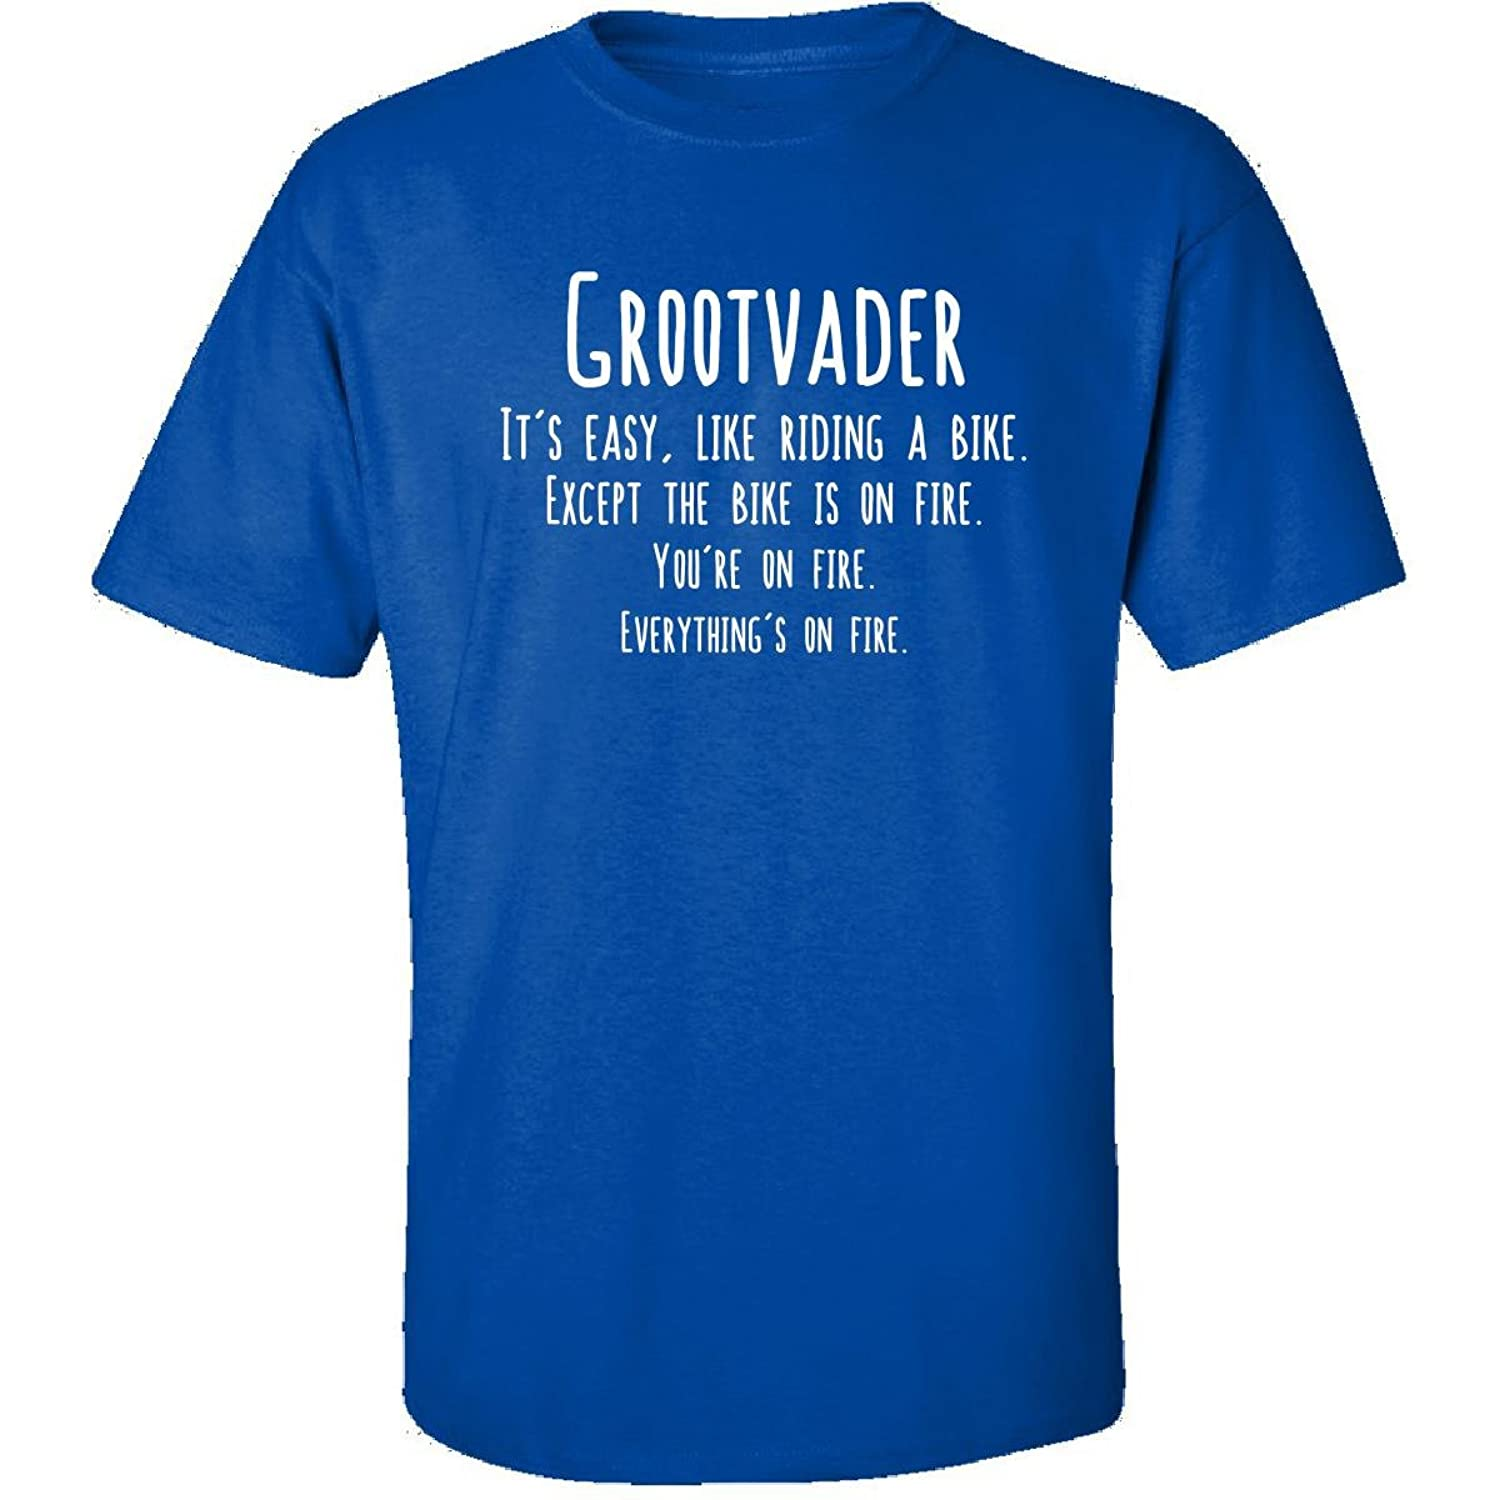 Grootvader Is Easy Like Riding Bike On Fire Funny Job - Adult Shirt